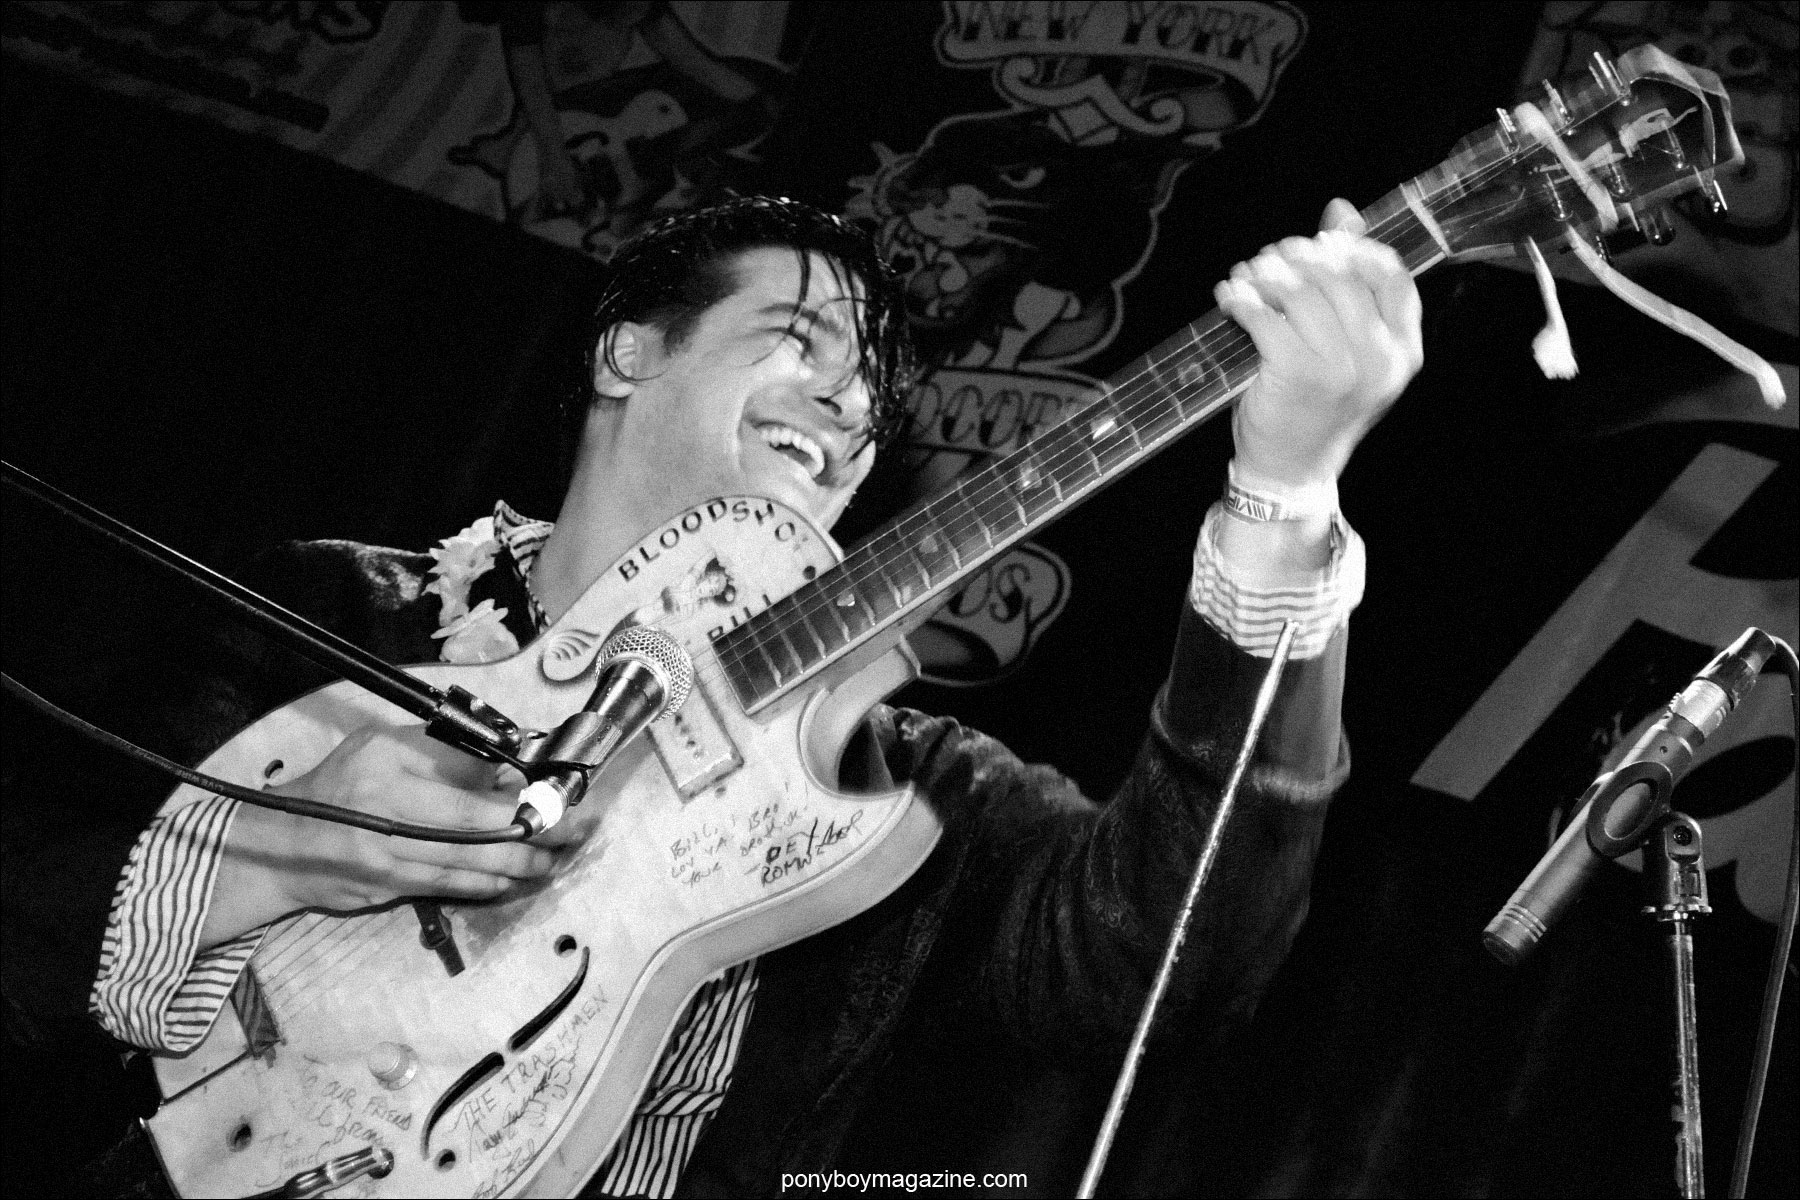 Rockabilly sensation Bloodshot Bill performing in New York City. Photographed by Alexander Thompson for Ponyboy Magazine.